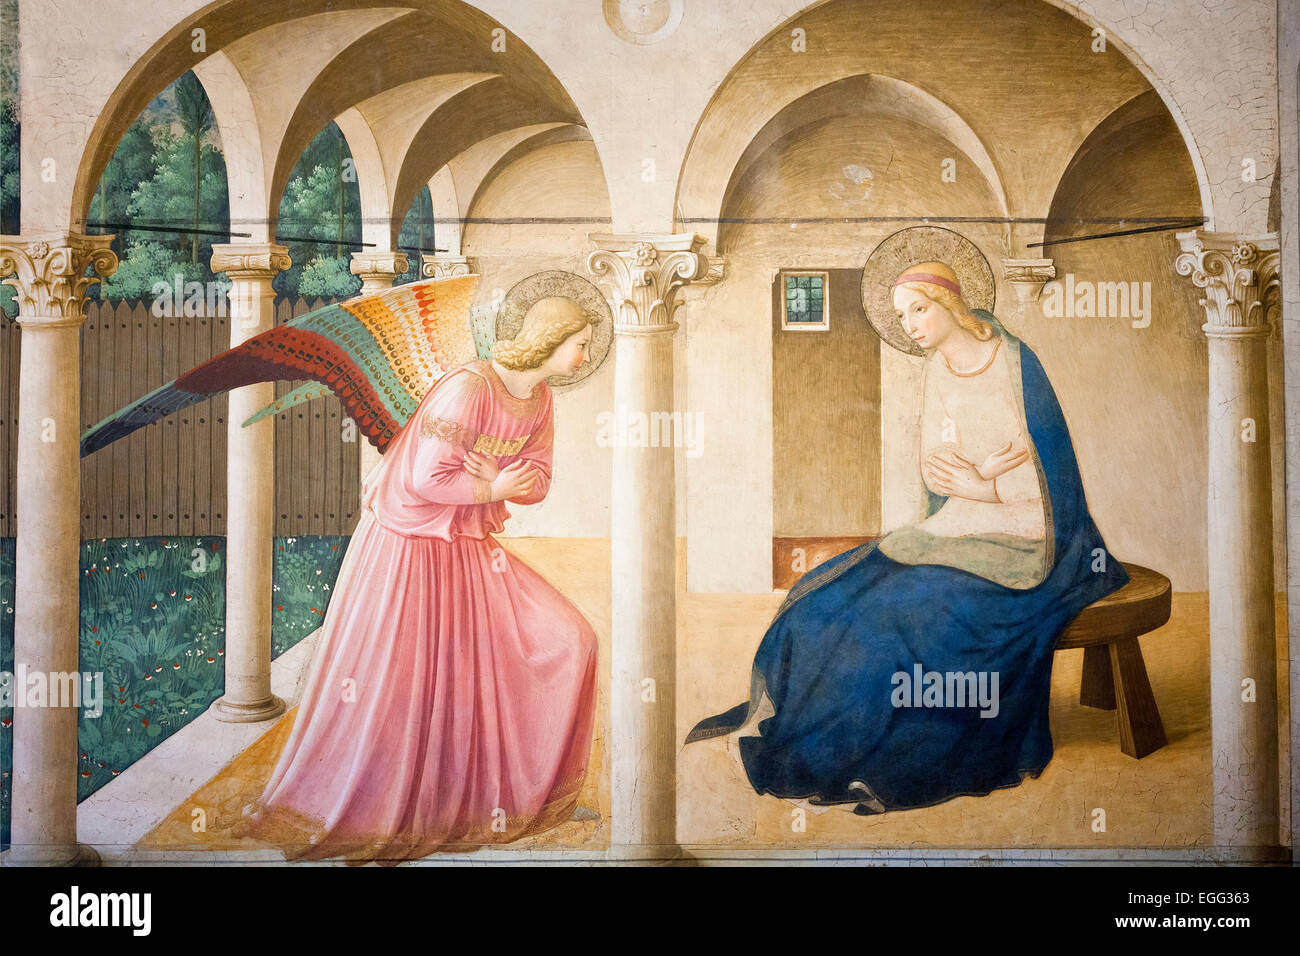 Italy, Florence, Convent of San Marco Stock Photo: 79029723 - Alamy